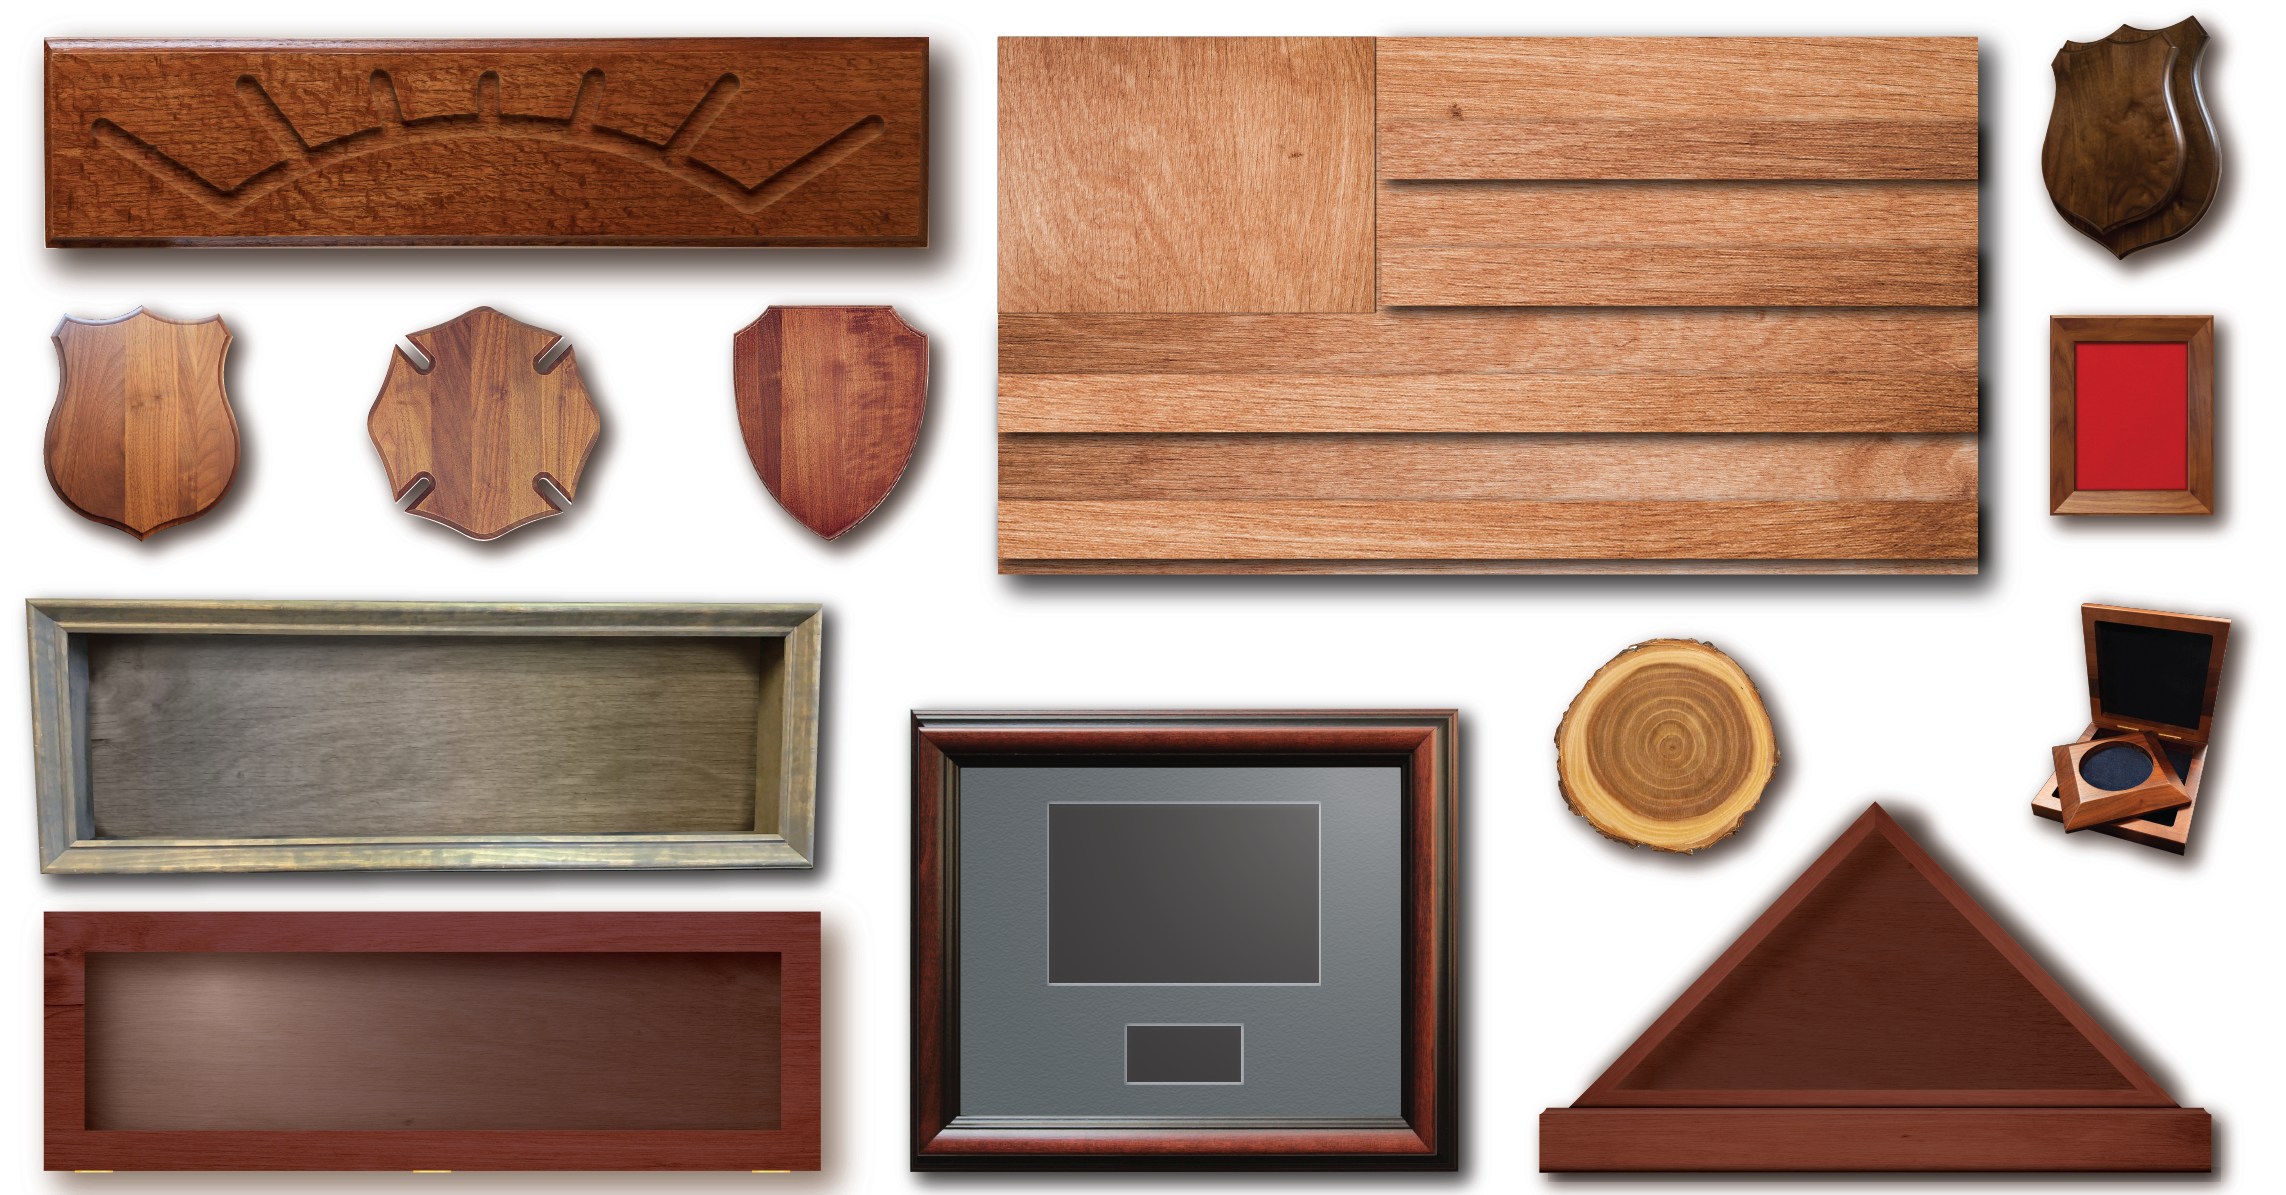 Woodworking and Framing Product Examples